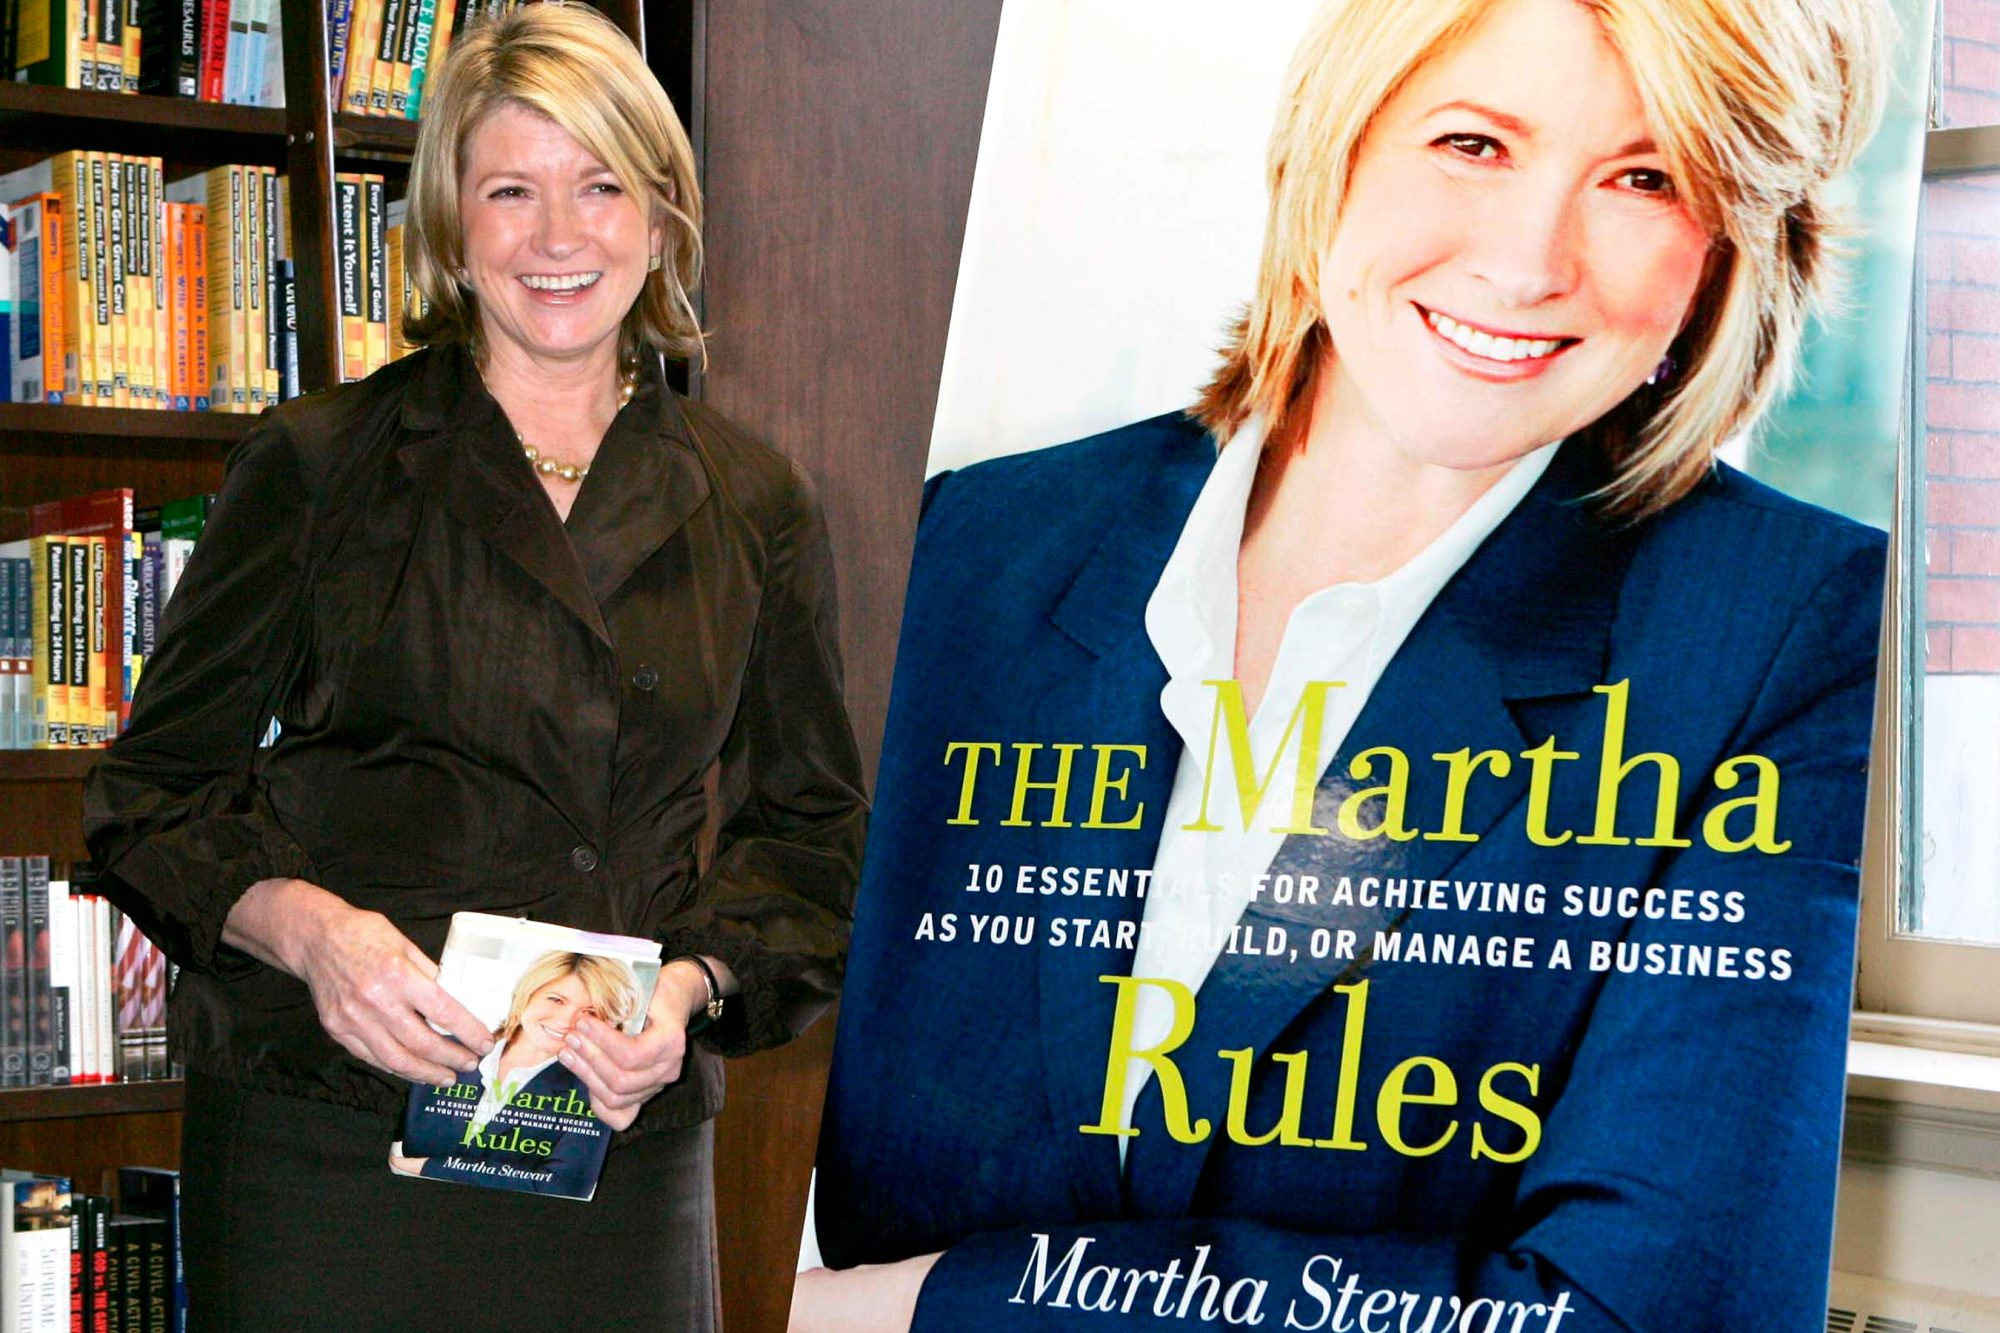 Martha Stewart poses before a book signing event for her new